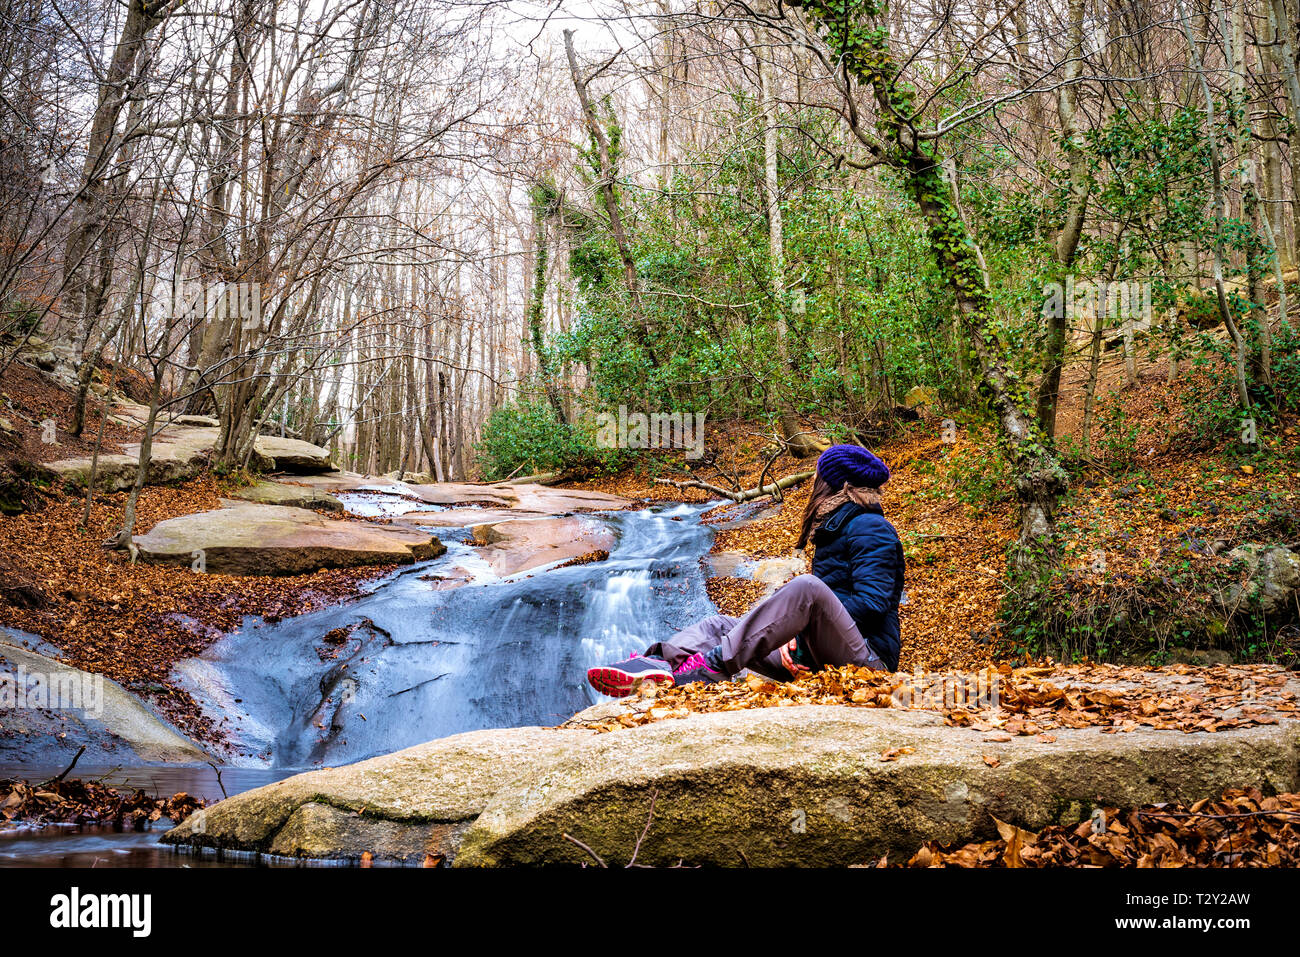 Woman sitting in the shore of the river admiring waterfall in the forest - Stock Image